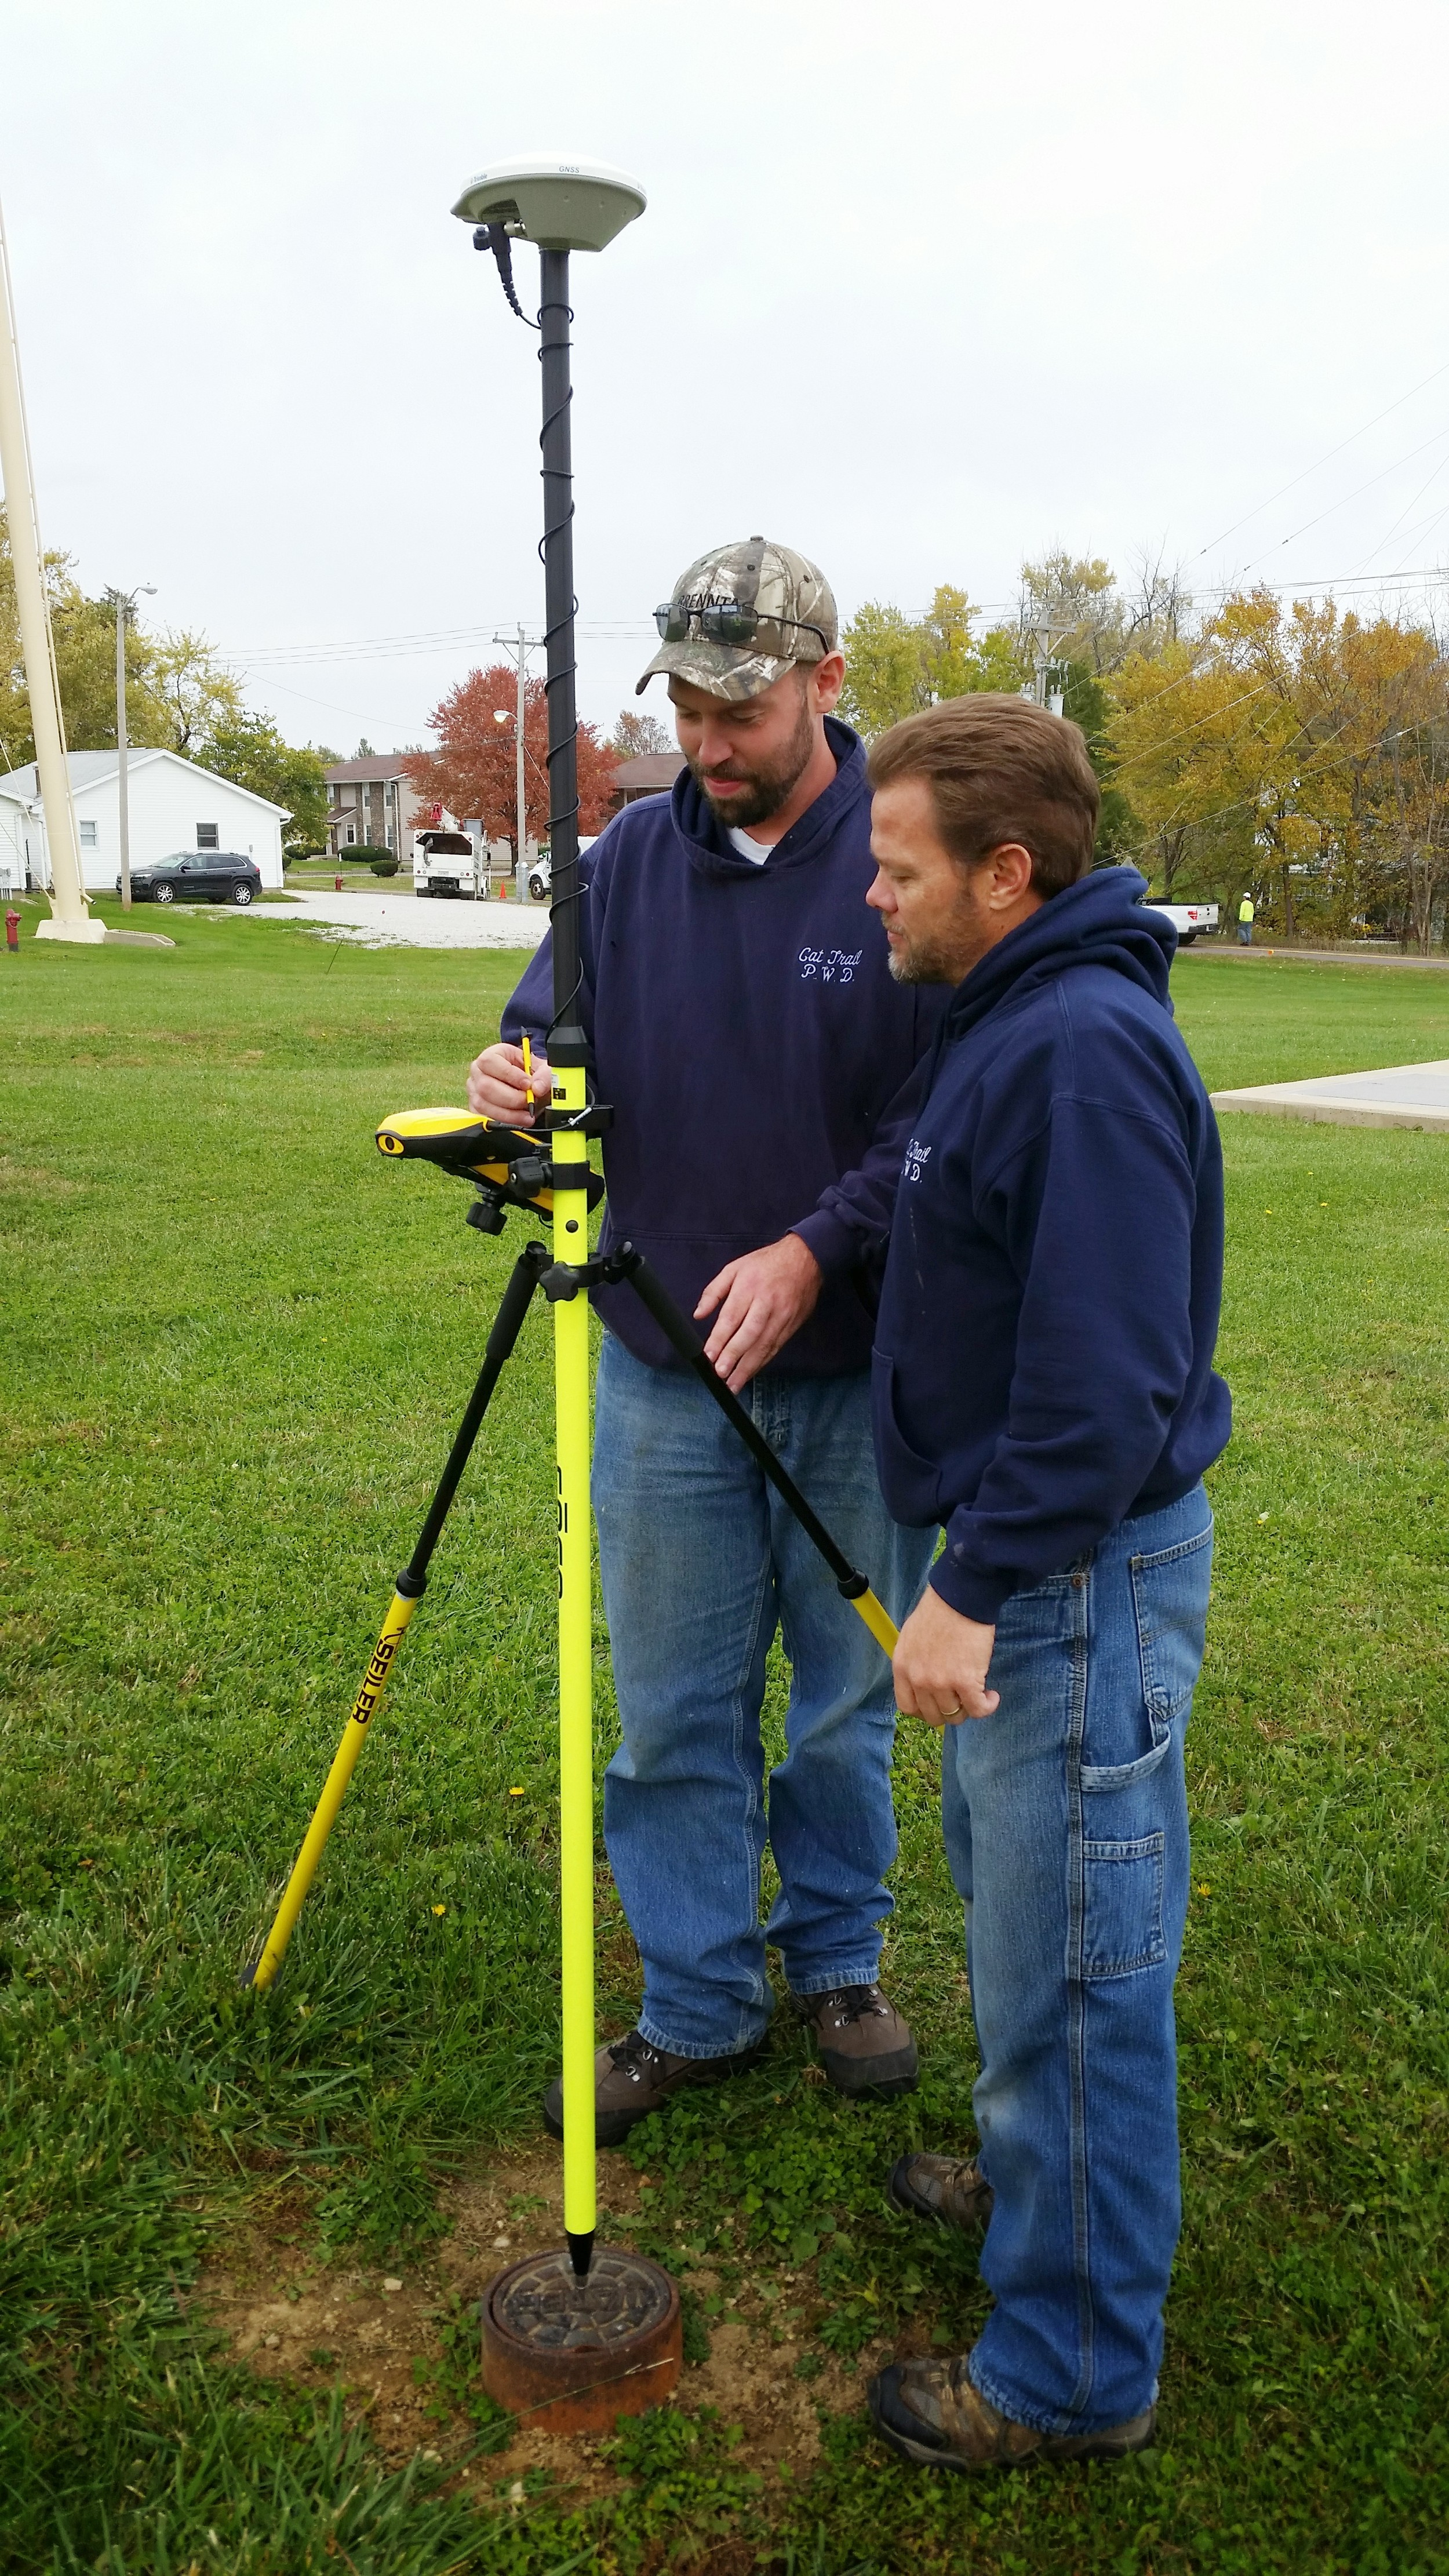 By havingn long time staff members update infrastructure mapping with precise GPS units, an organization can ensure their employees work is documented for future generations.